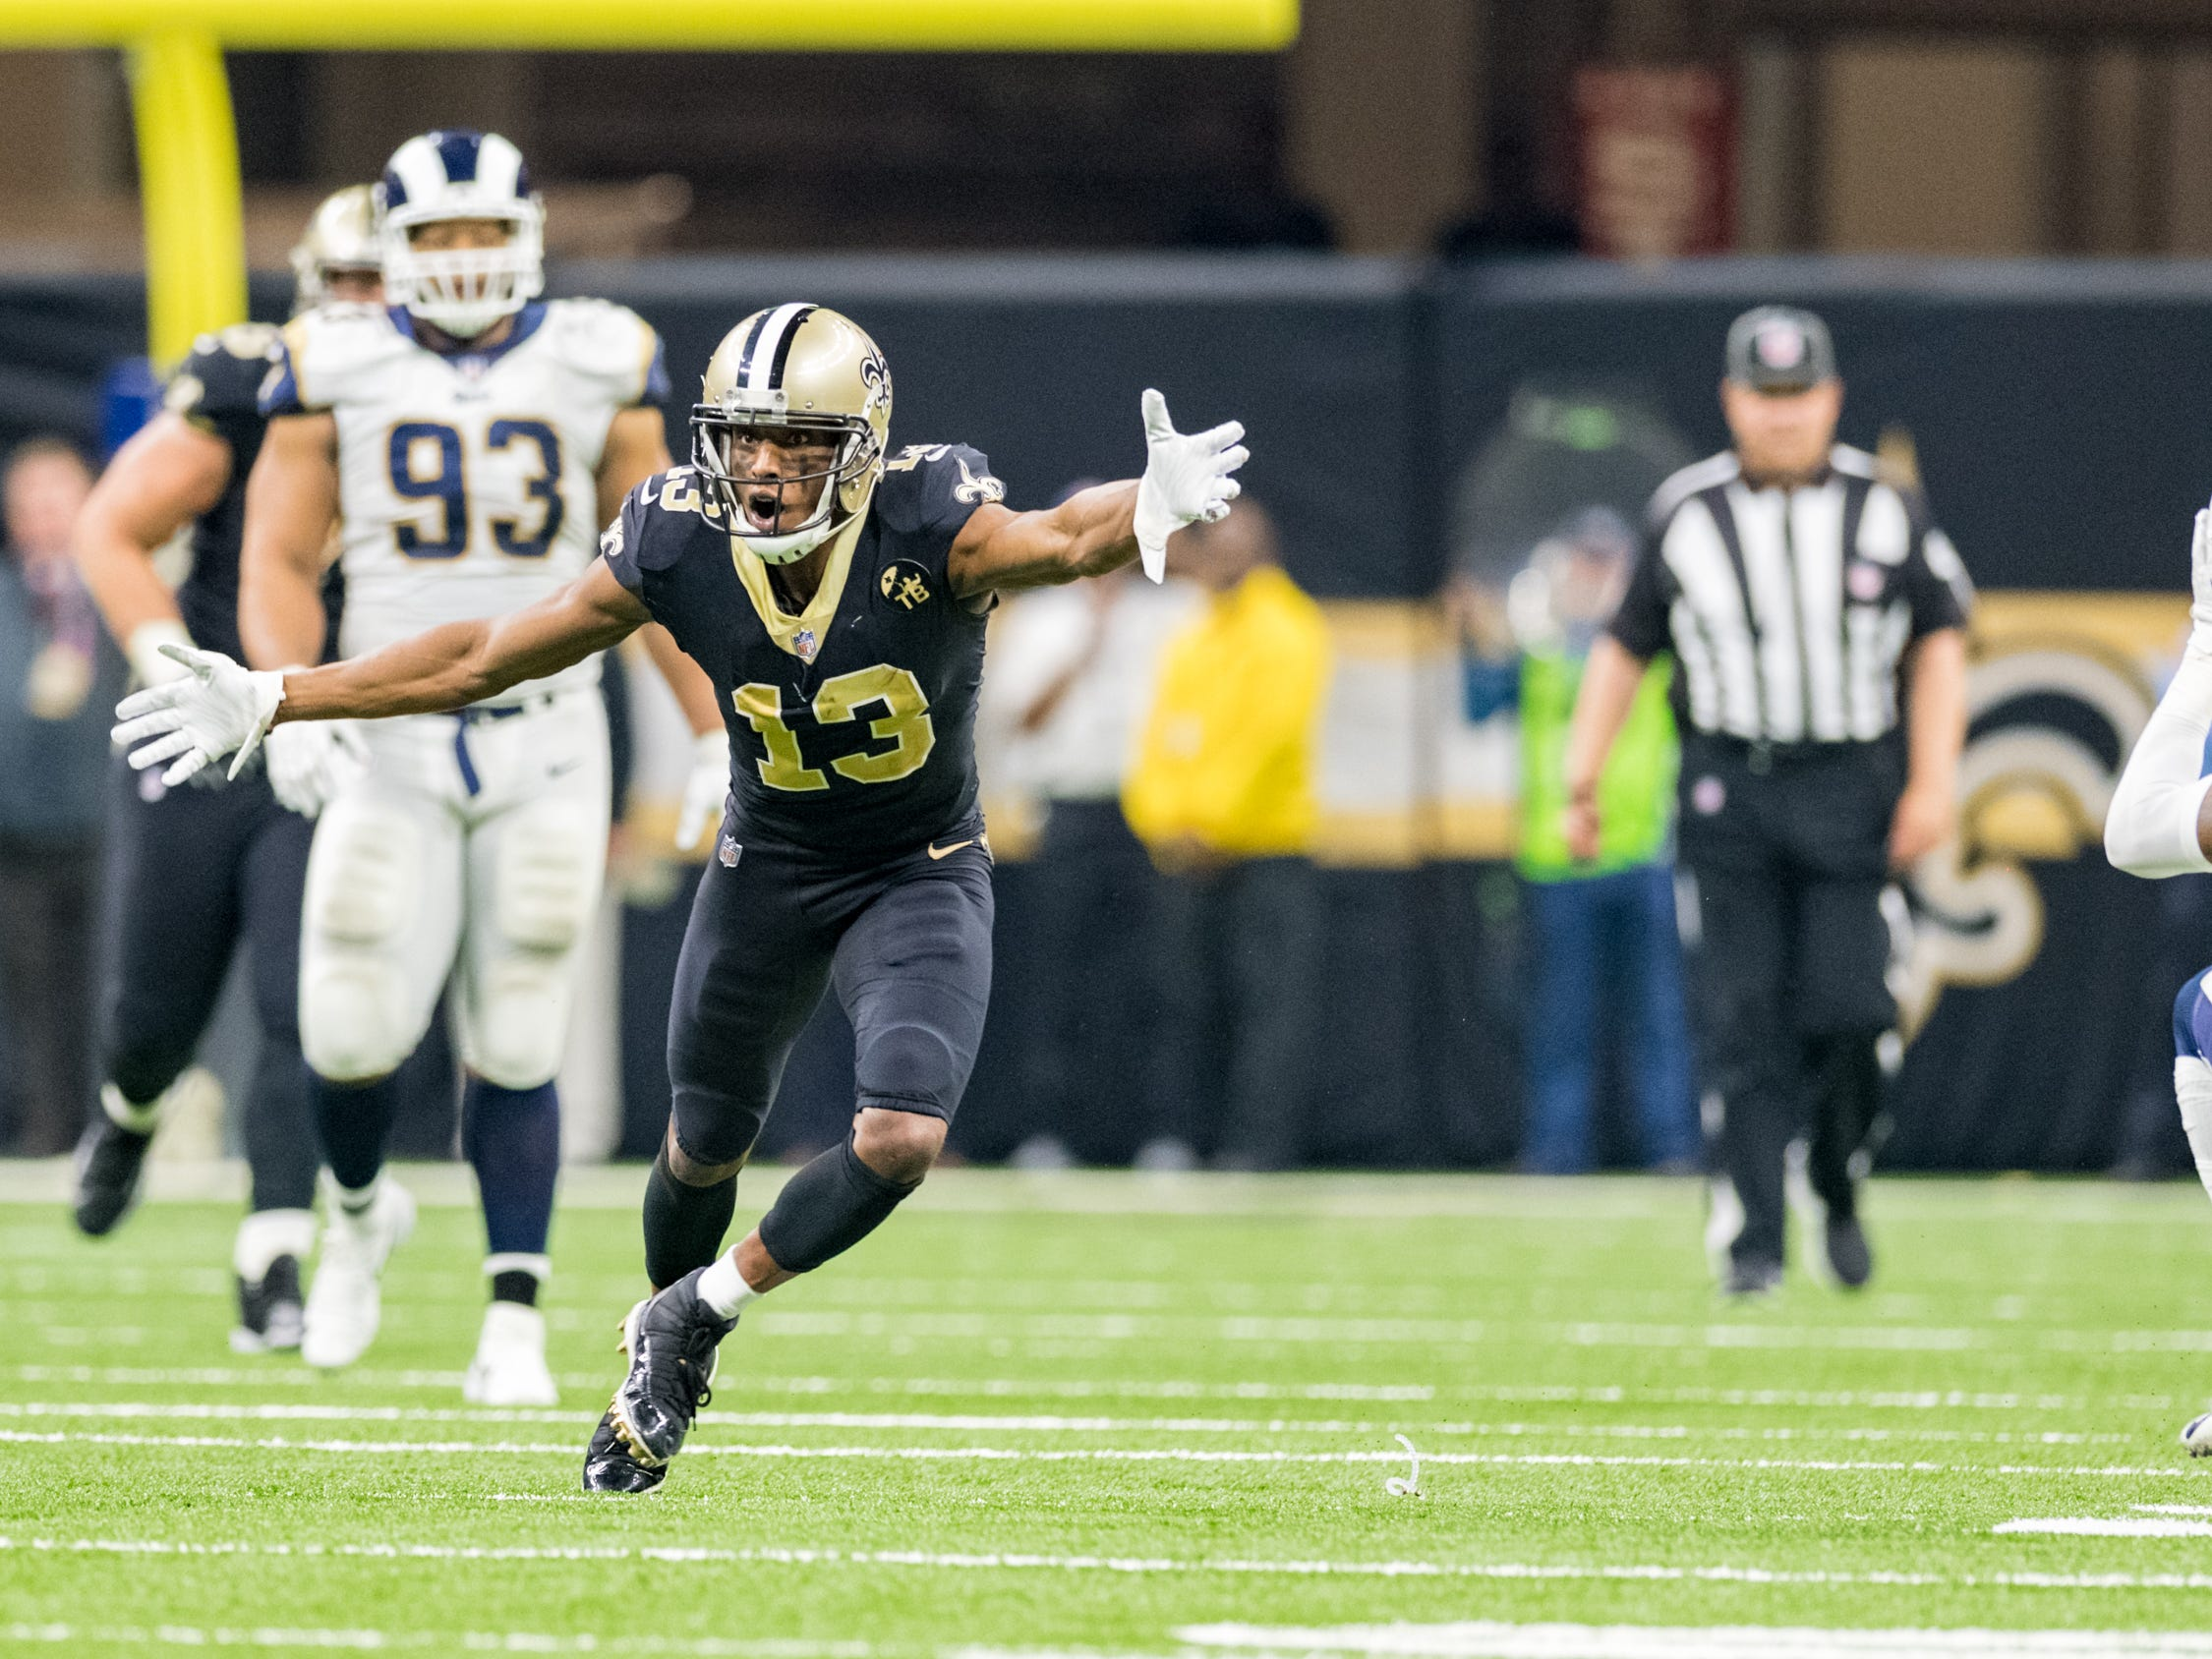 Rams Safety catches an interception on a pass intended for Saints Michael Thomas during the NFC Championship playoff football game between the New Orleans Saints and the Los Angeles Rams at the Mercedes-Benz Superdome in New Orleans. Sunday, Jan. 20, 2019.